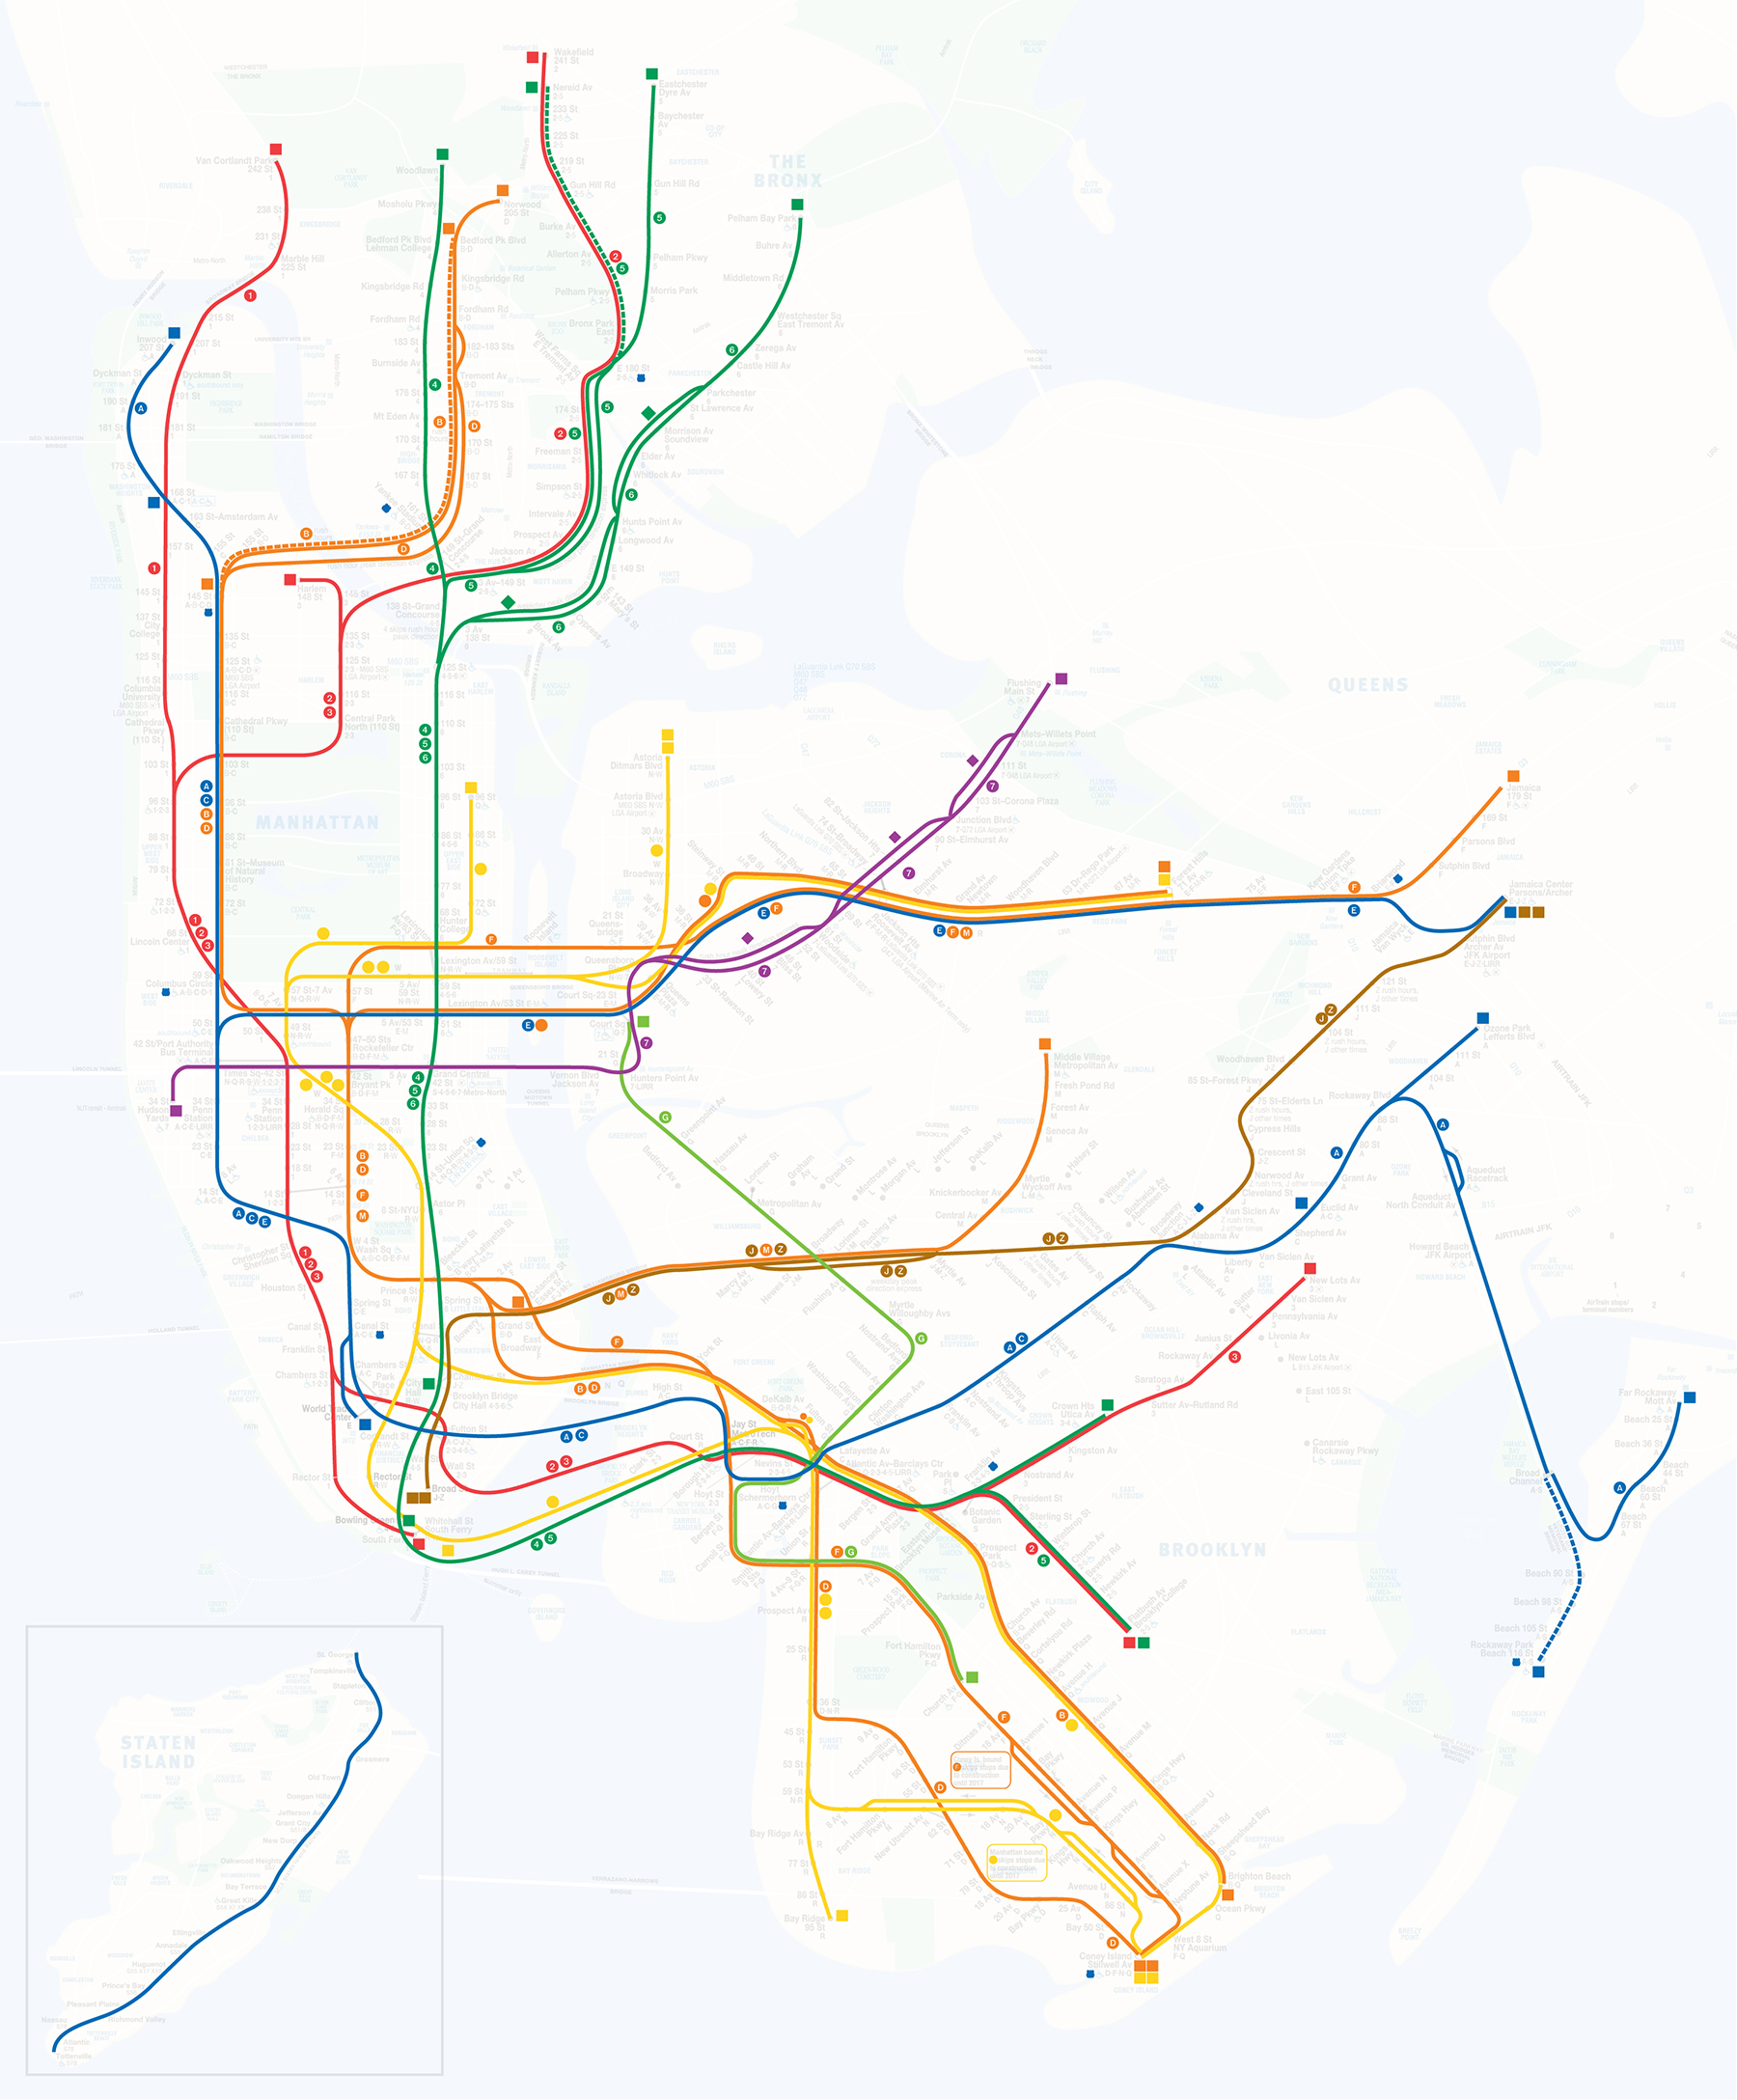 Rail-lines  show the paths of specific rail-lines and how they interact.